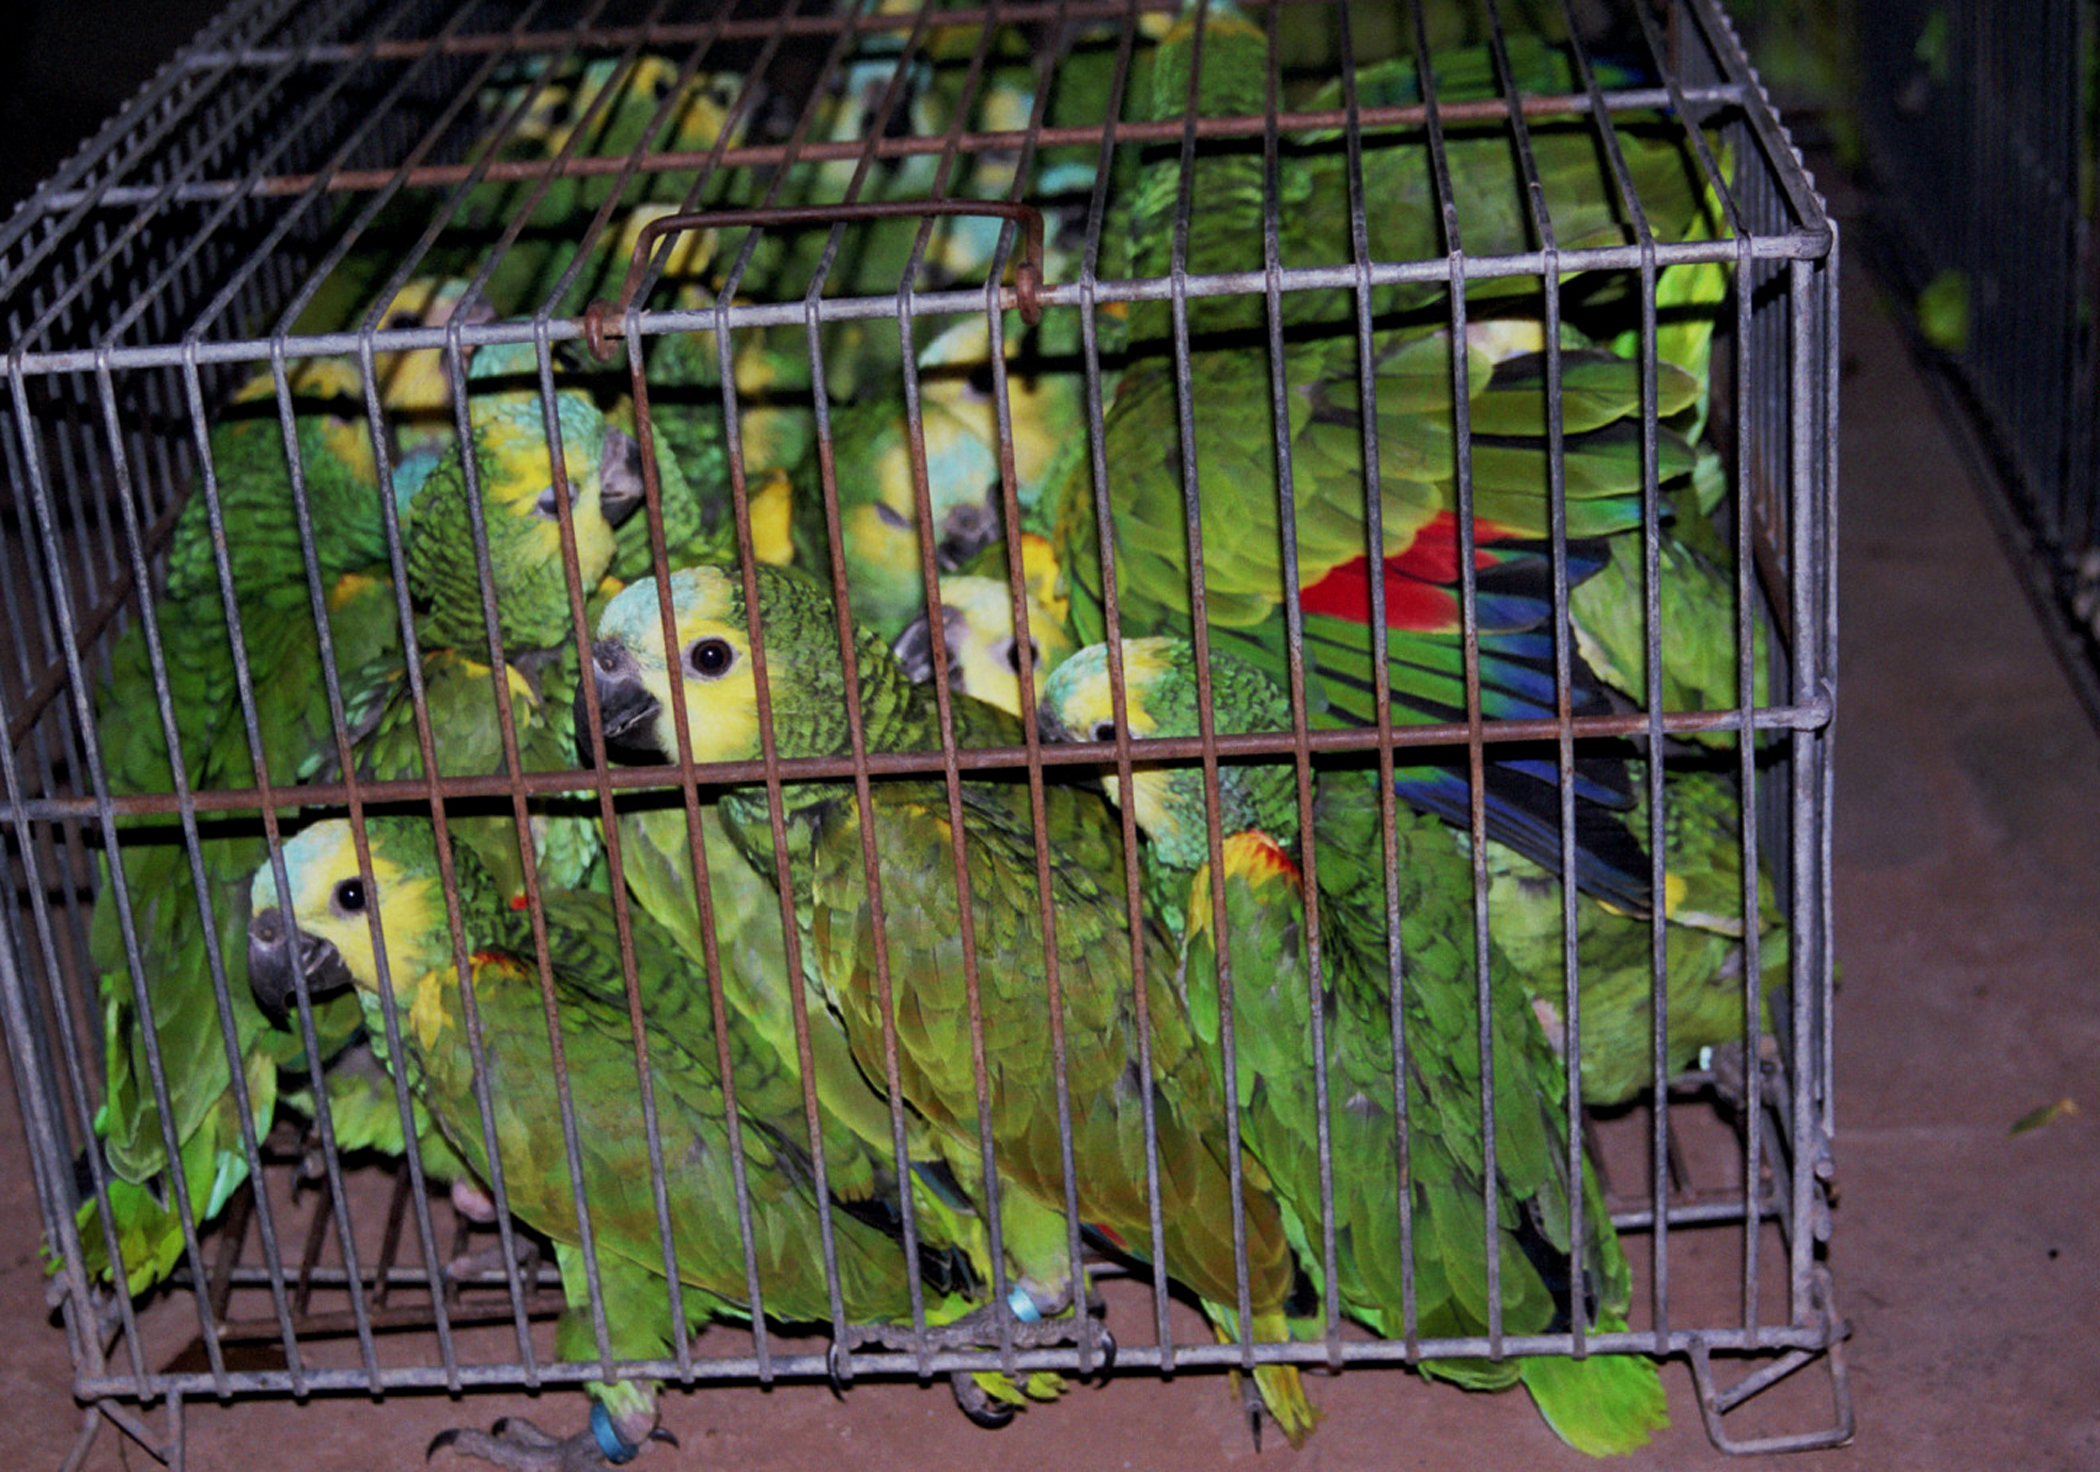 http://www.parrots.org/flyfree/images/mediaphotos/ArgTrap5H.jpg